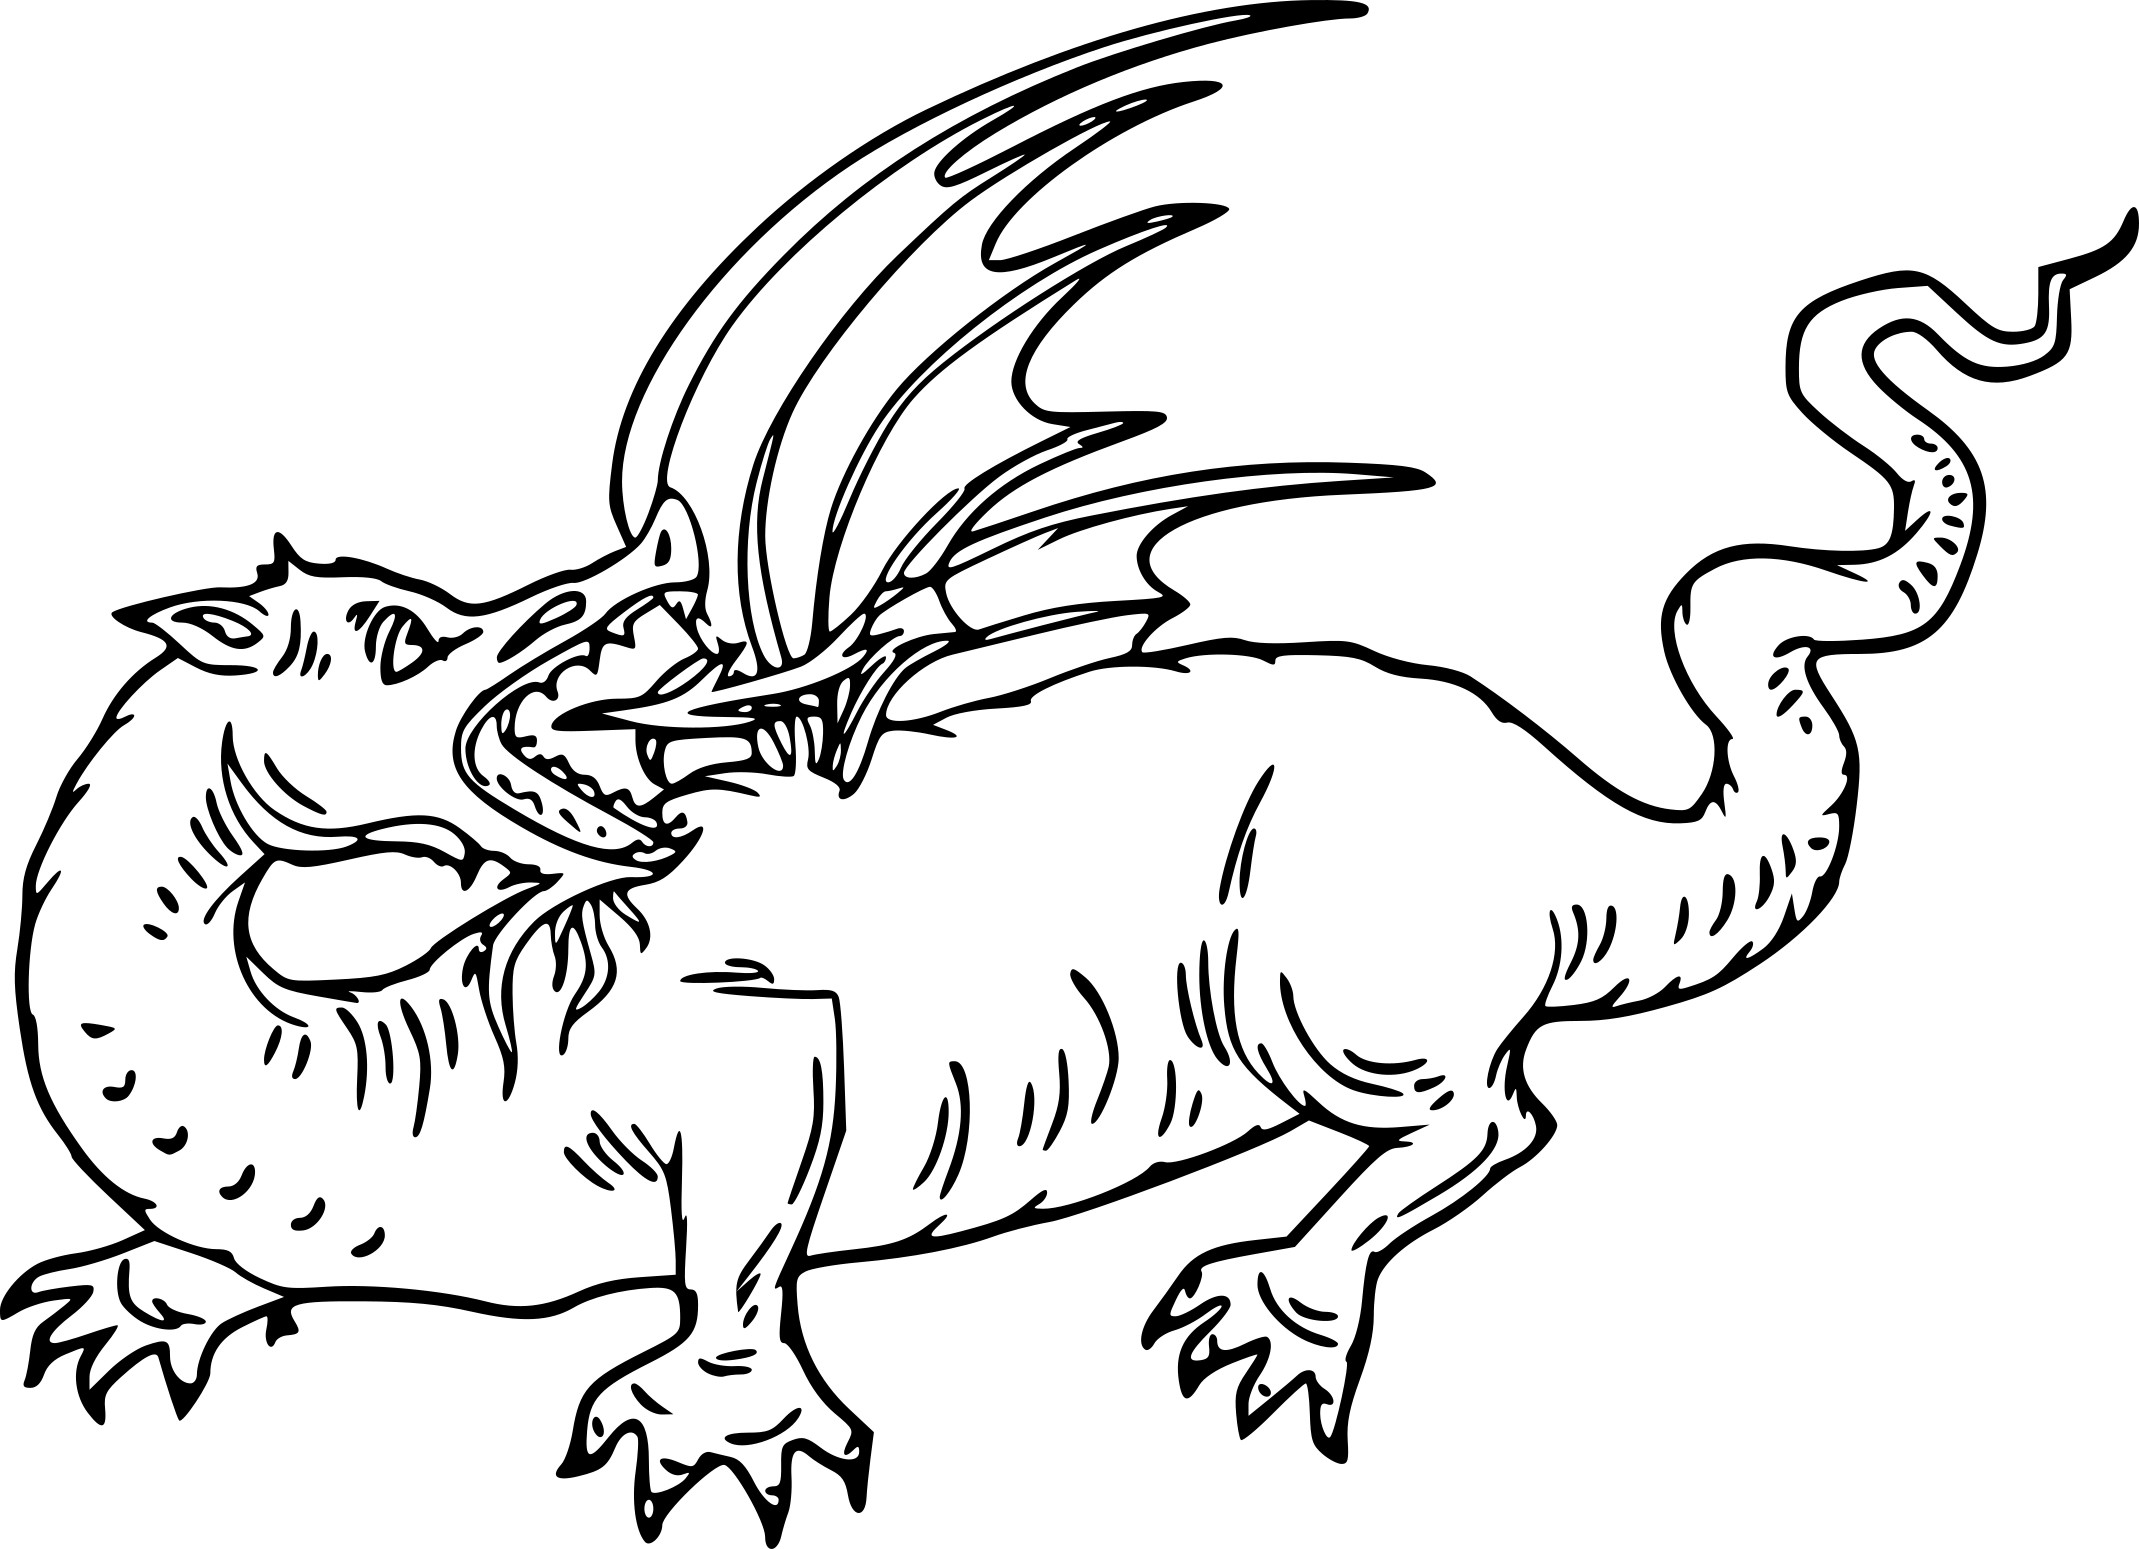 Coloriage dragon rouge imprimer - Coloriages de dragons ...